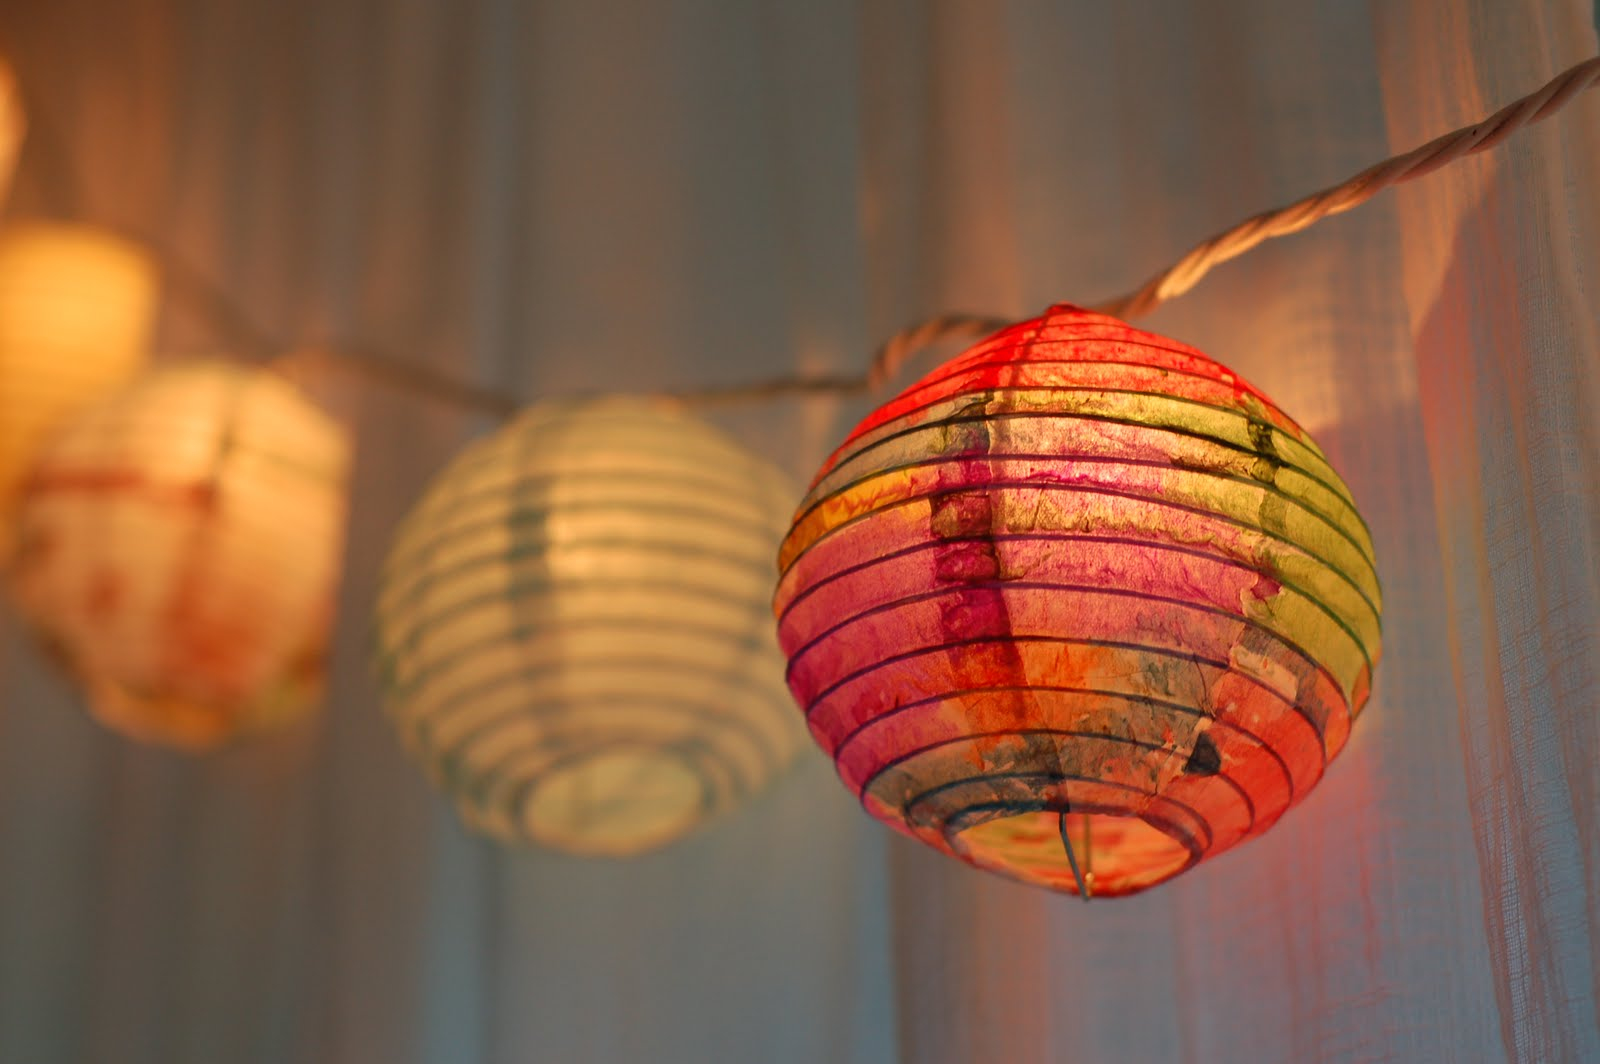 Painted Paper Lanterns